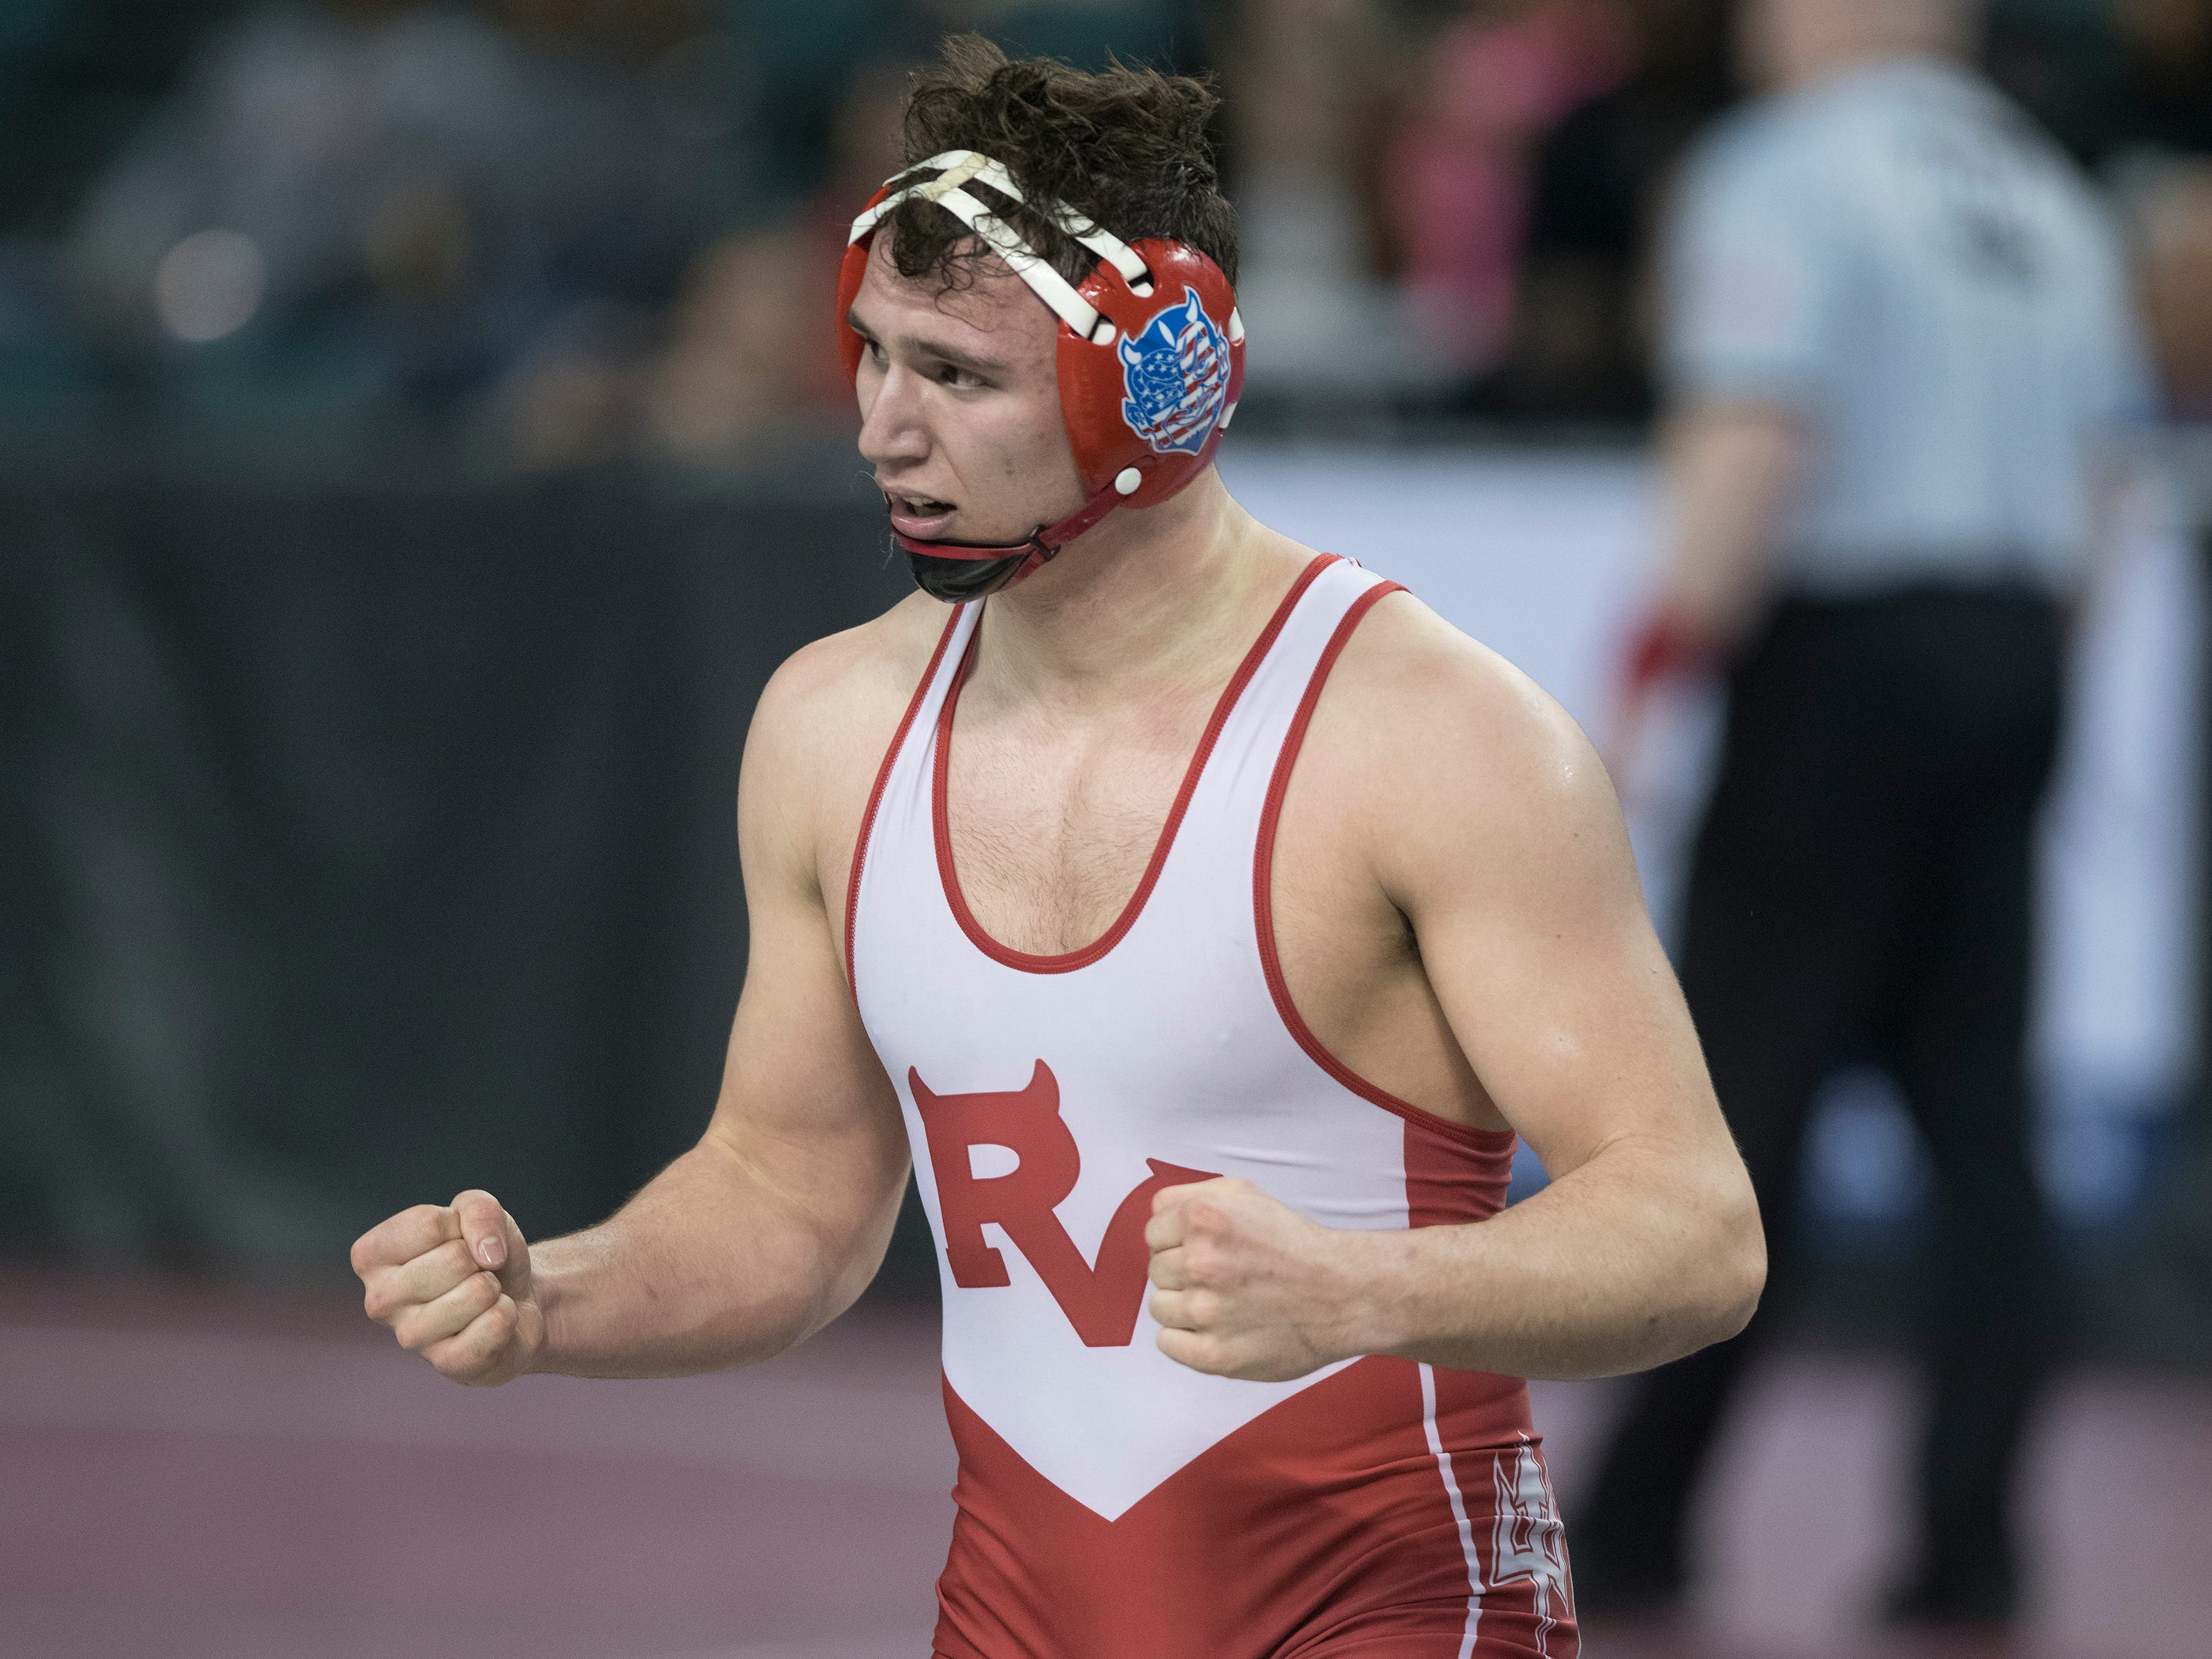 Rancocas Valley's Drew Bowker reacts after beating Pitman's Zane Coles, 6-4, in a 195 lb. pre-quarterfinal round bout during the 2019 NJSIAA State Wrestling Championships tournament held at Boardwalk Hall in Atlantic City on Thursday, February 28, 2019.